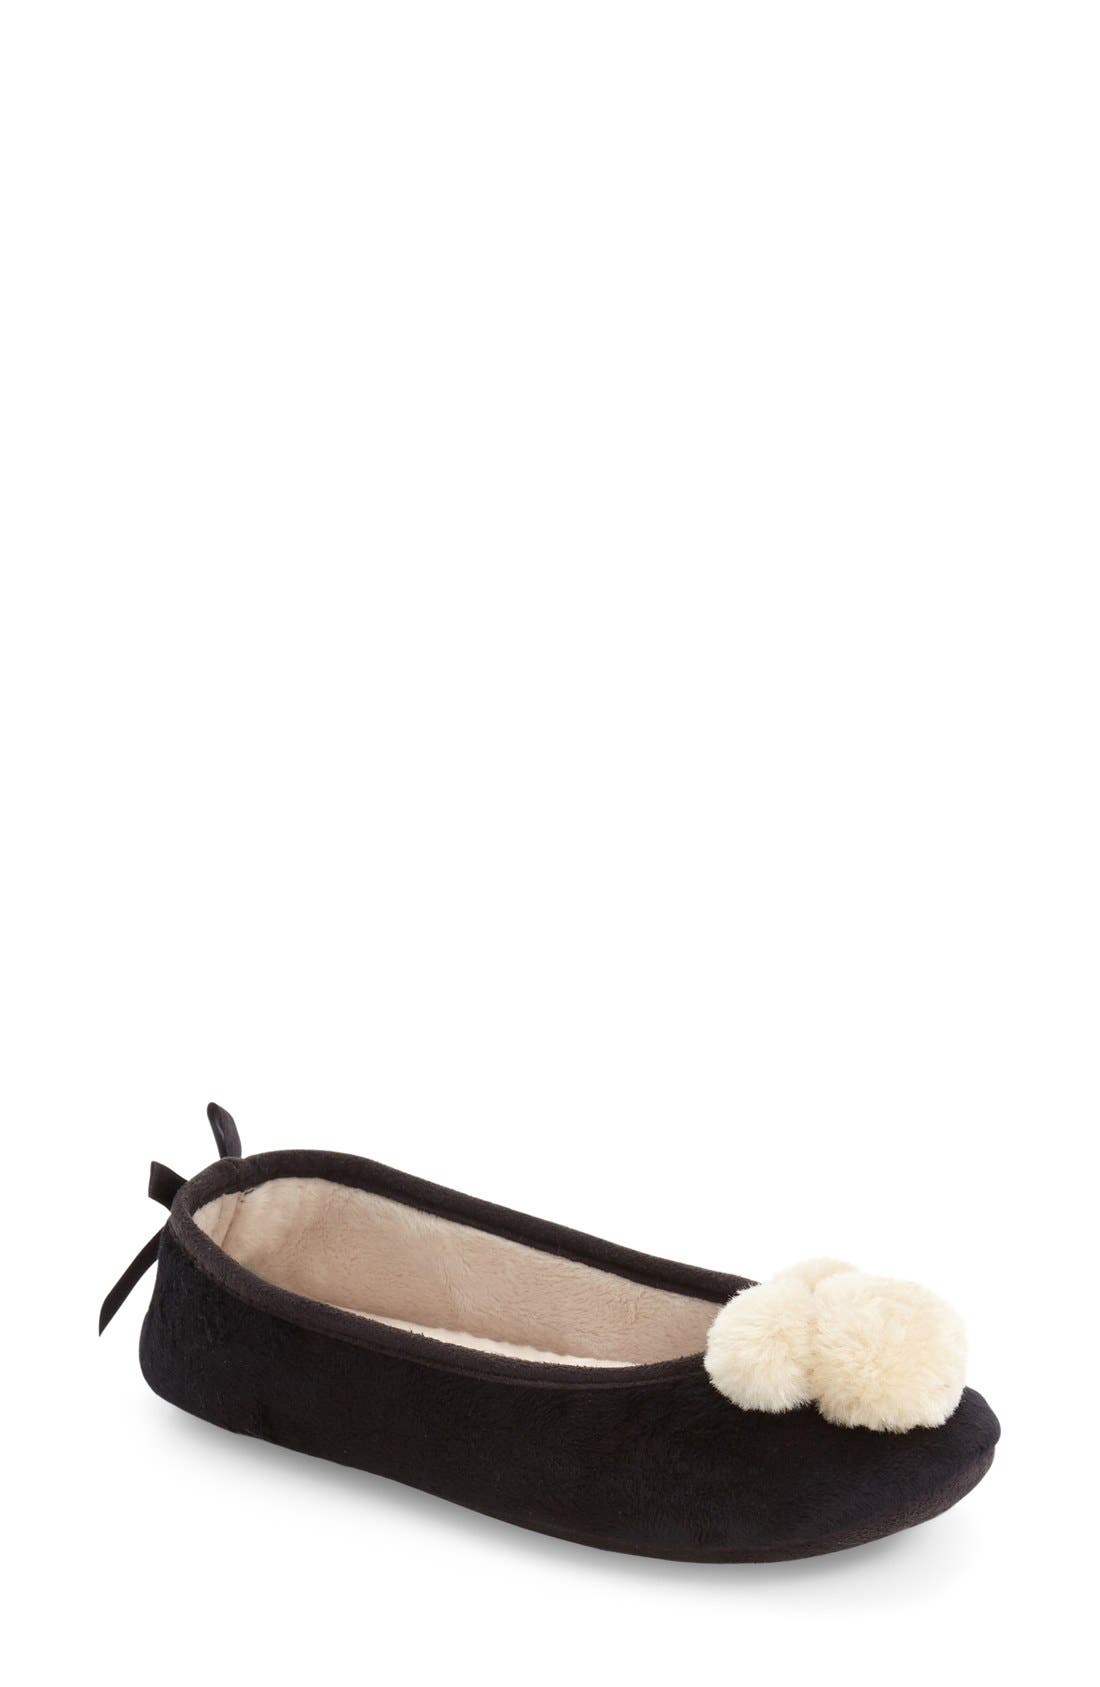 patricia green Pom Pom Slipper (Women)